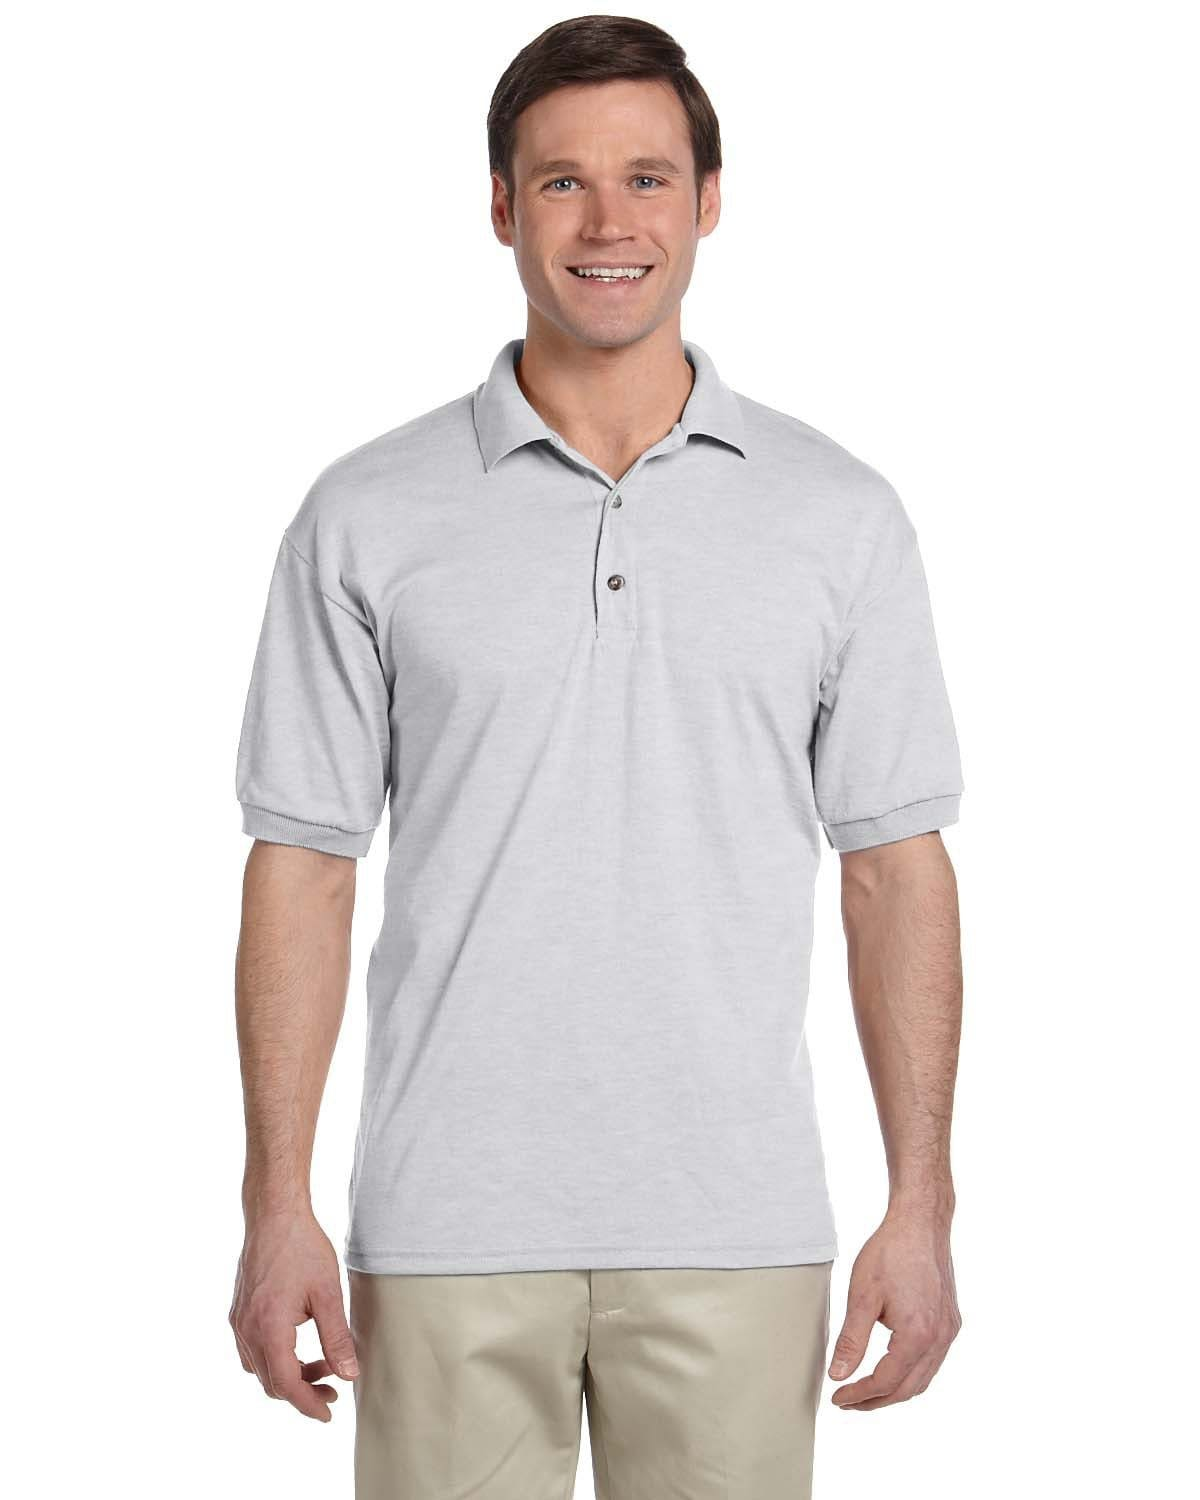 g880-adult-6-oz-50-50-jersey-polo-large-xl-Large-ASH GREY-Oasispromos